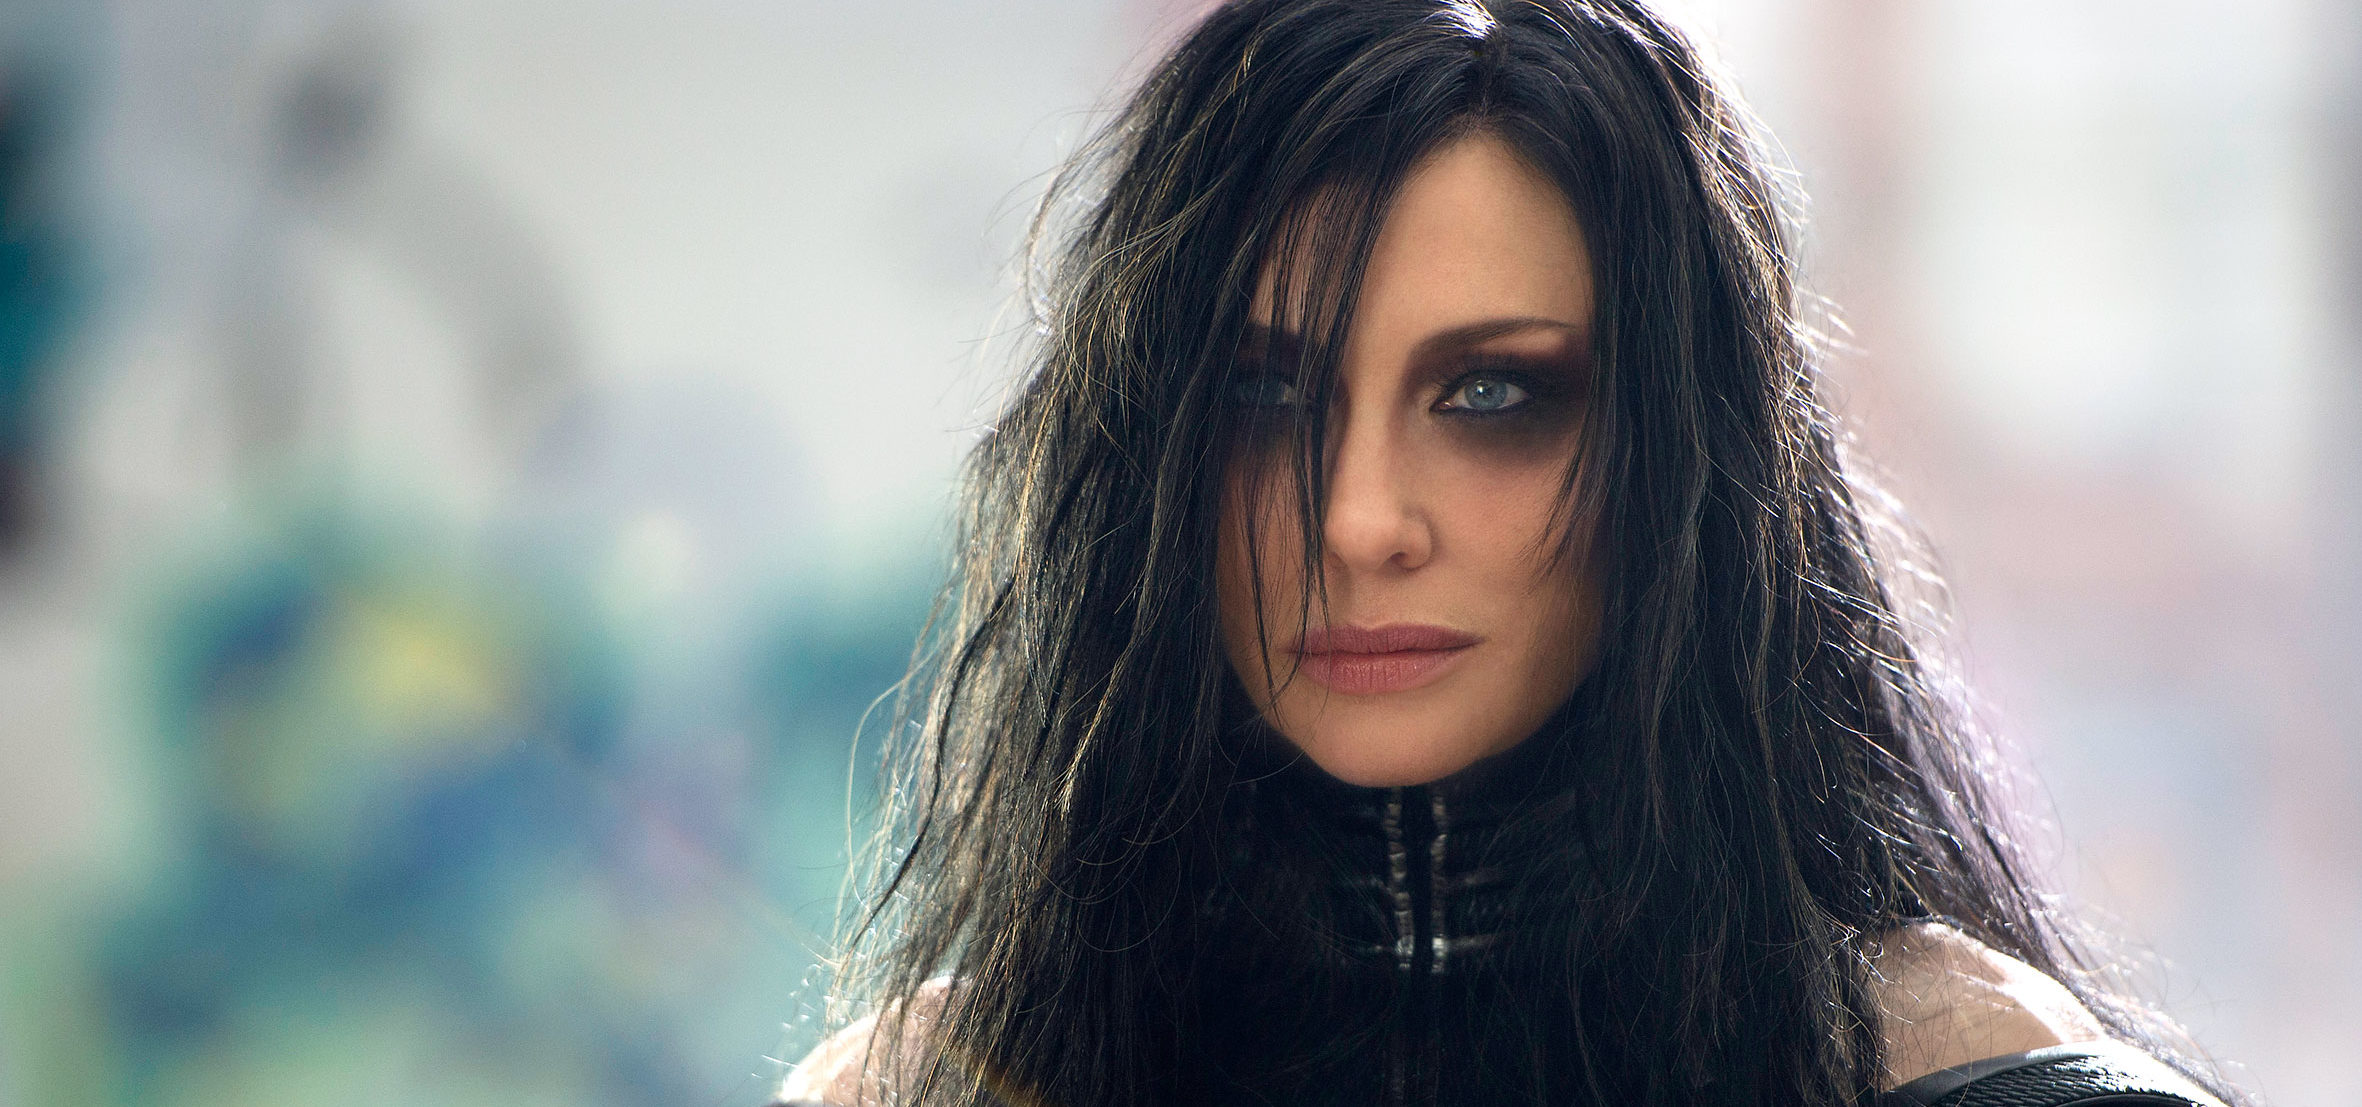 First look at Cate Blanchett as Hela in Thor: Ragnarok